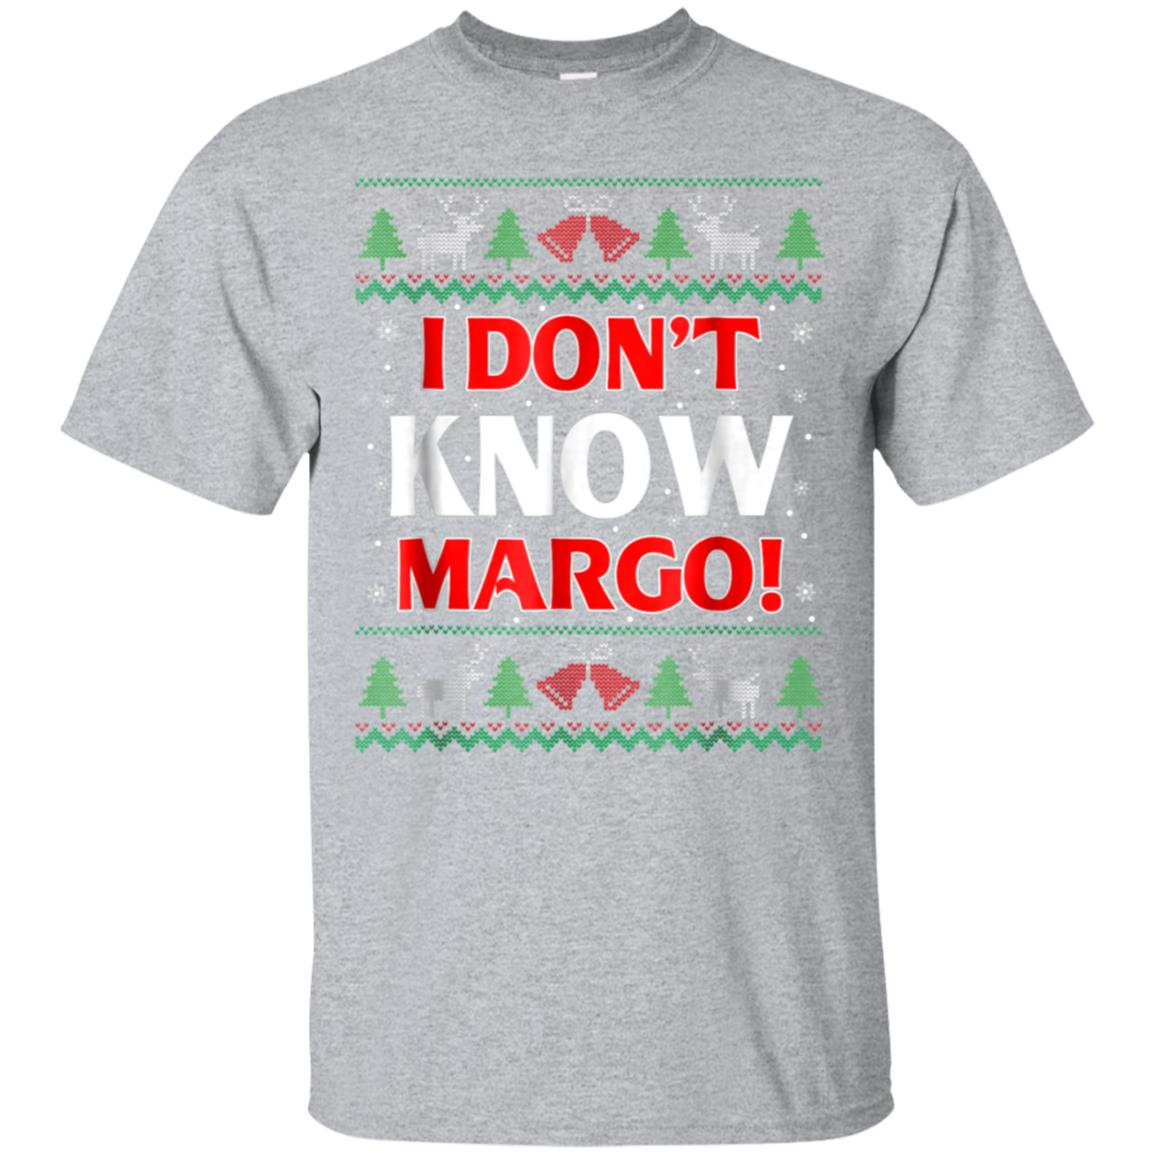 I Don t Know Margo - Funny Christmas Vacation TShirt 99promocode